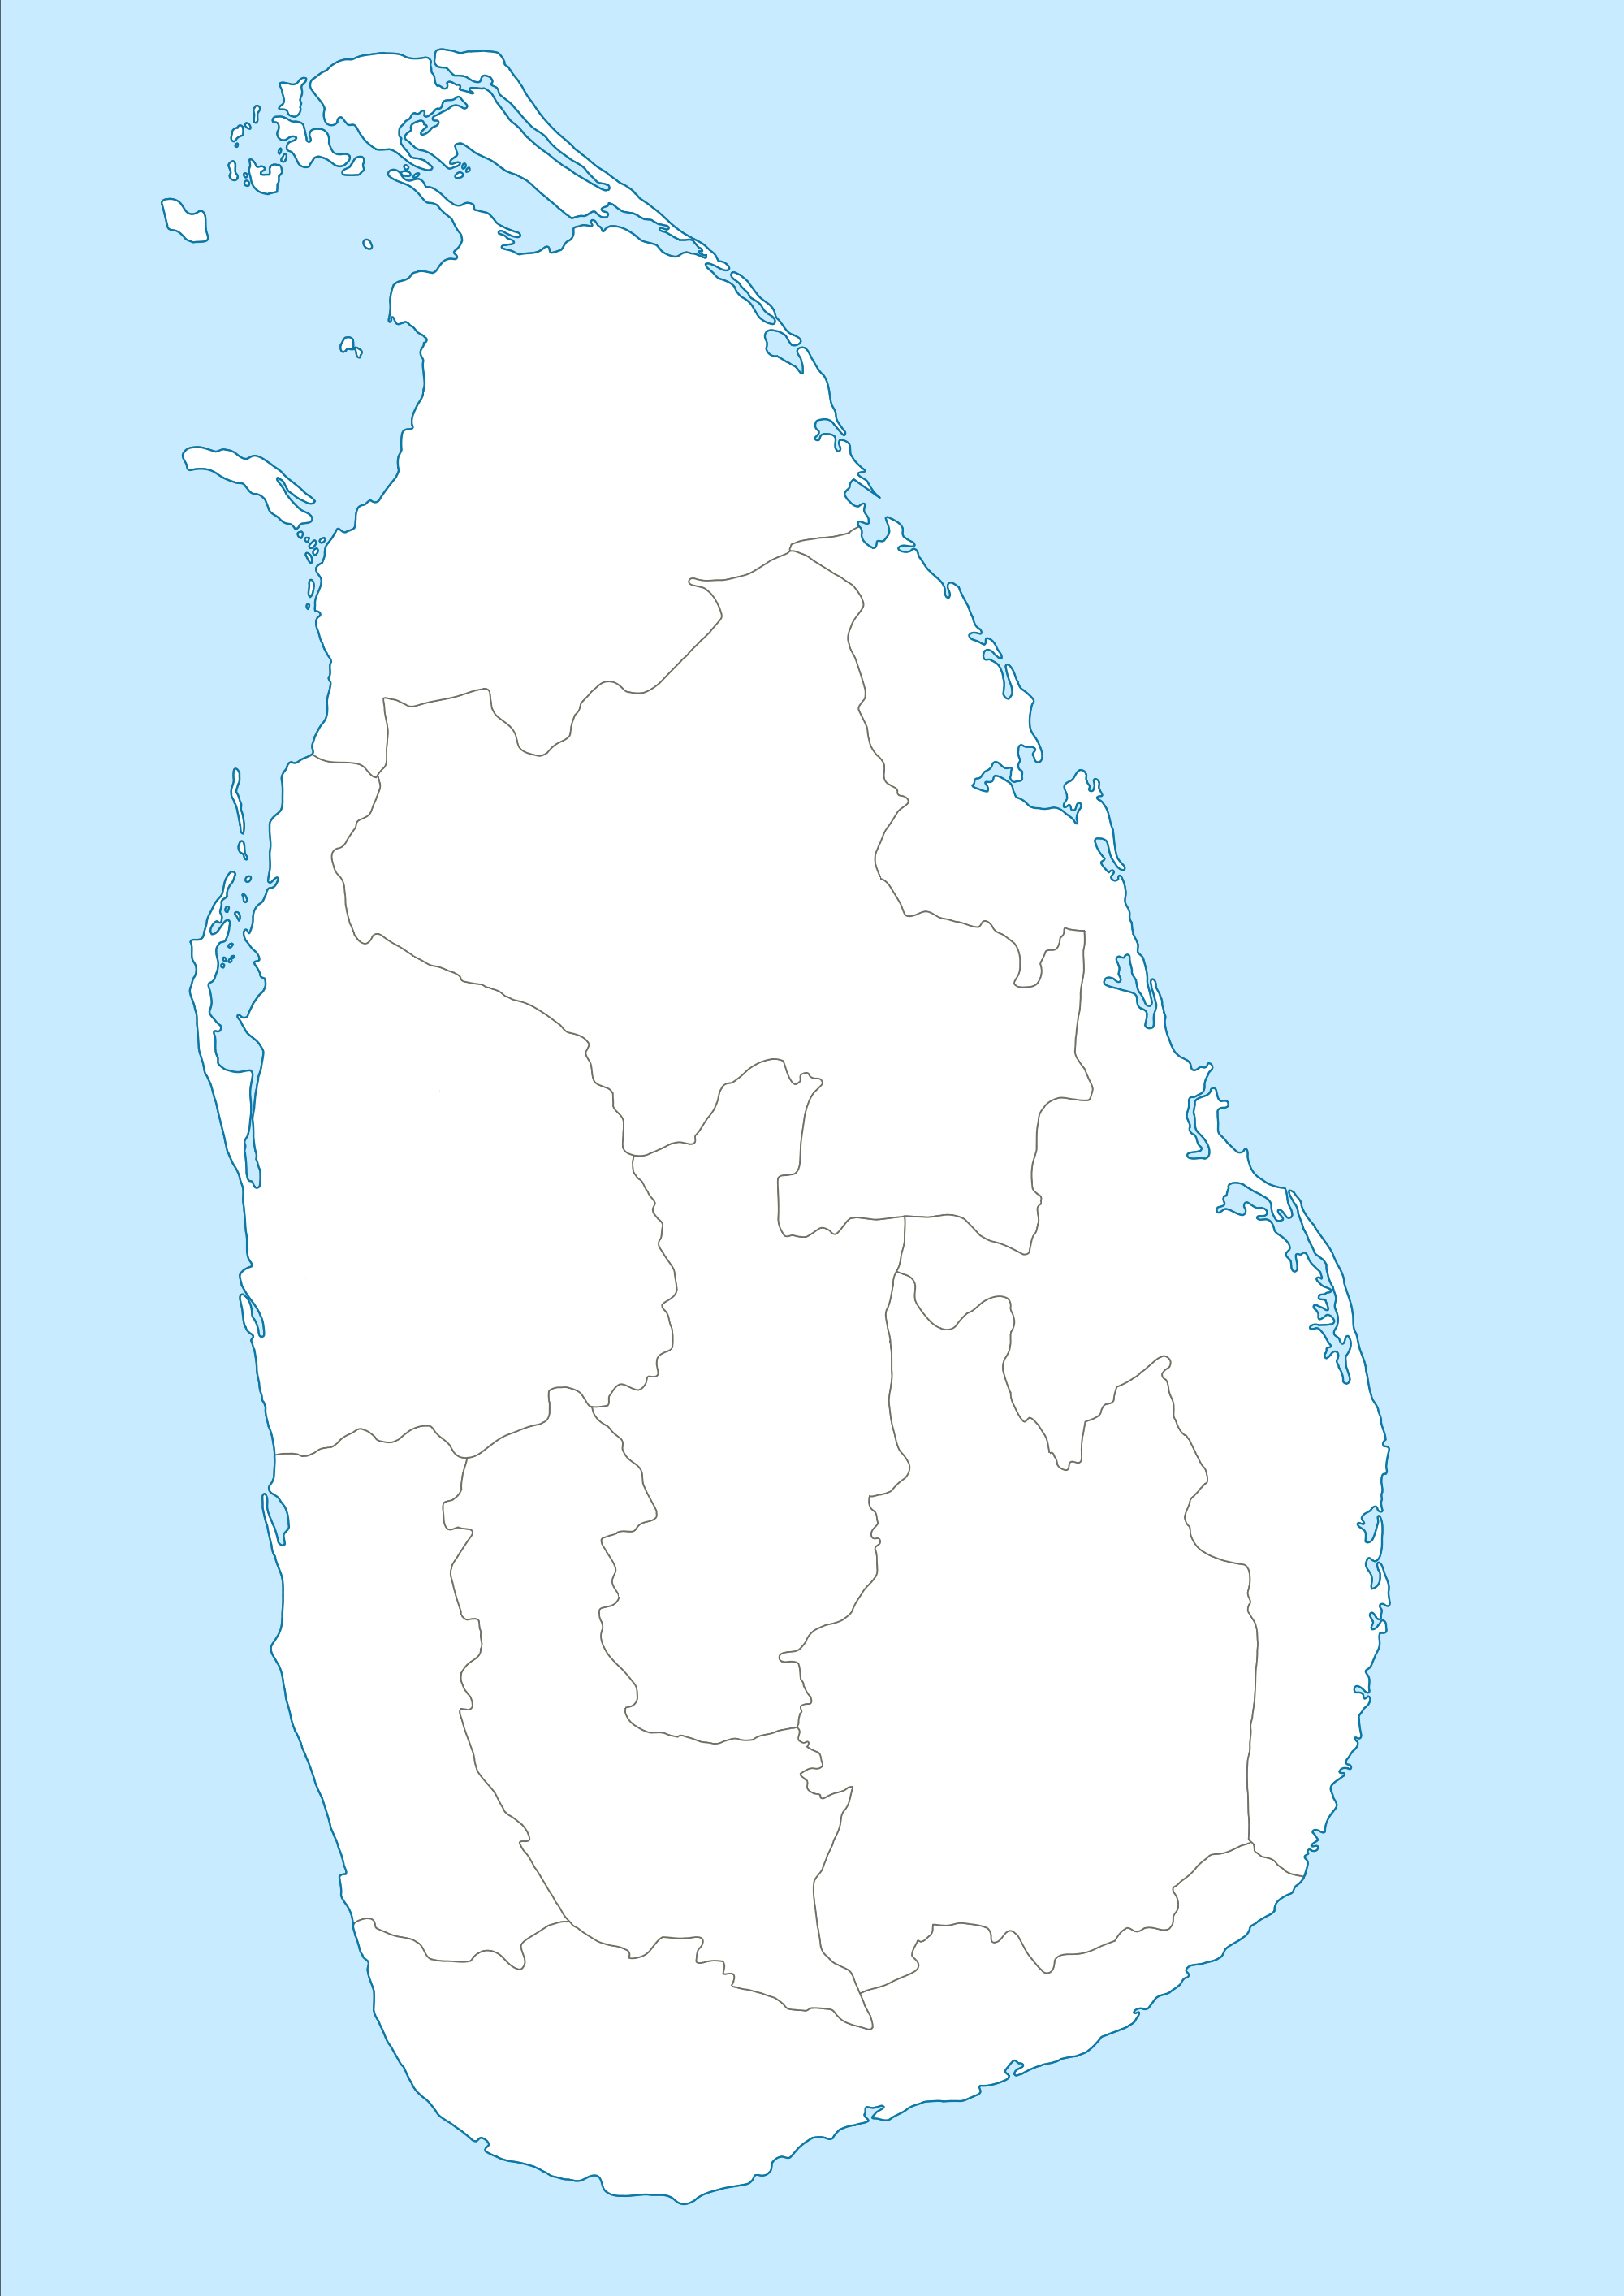 Sri Lanka Political Map.File Map Of Sri Lanka Provinces Png Wikimedia Commons